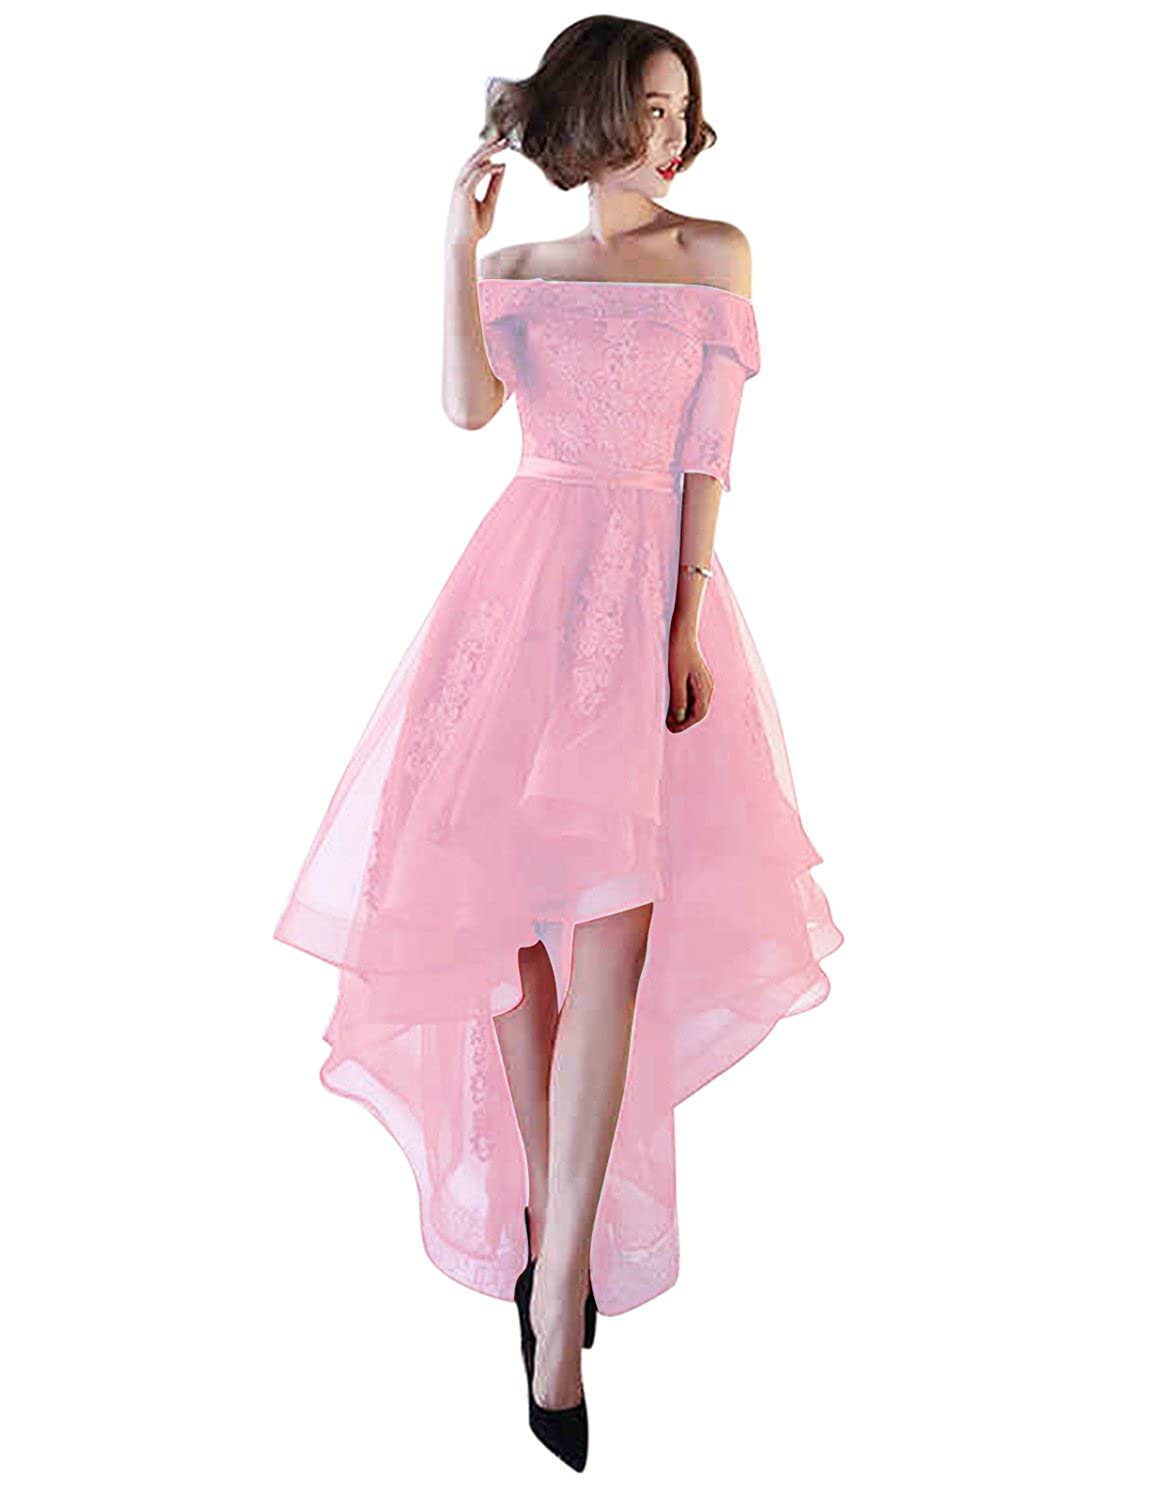 Pink BessWedding Women's Tulle High Low Homecoming Dresses Short 2018 Formal Prom Gown BHZ707